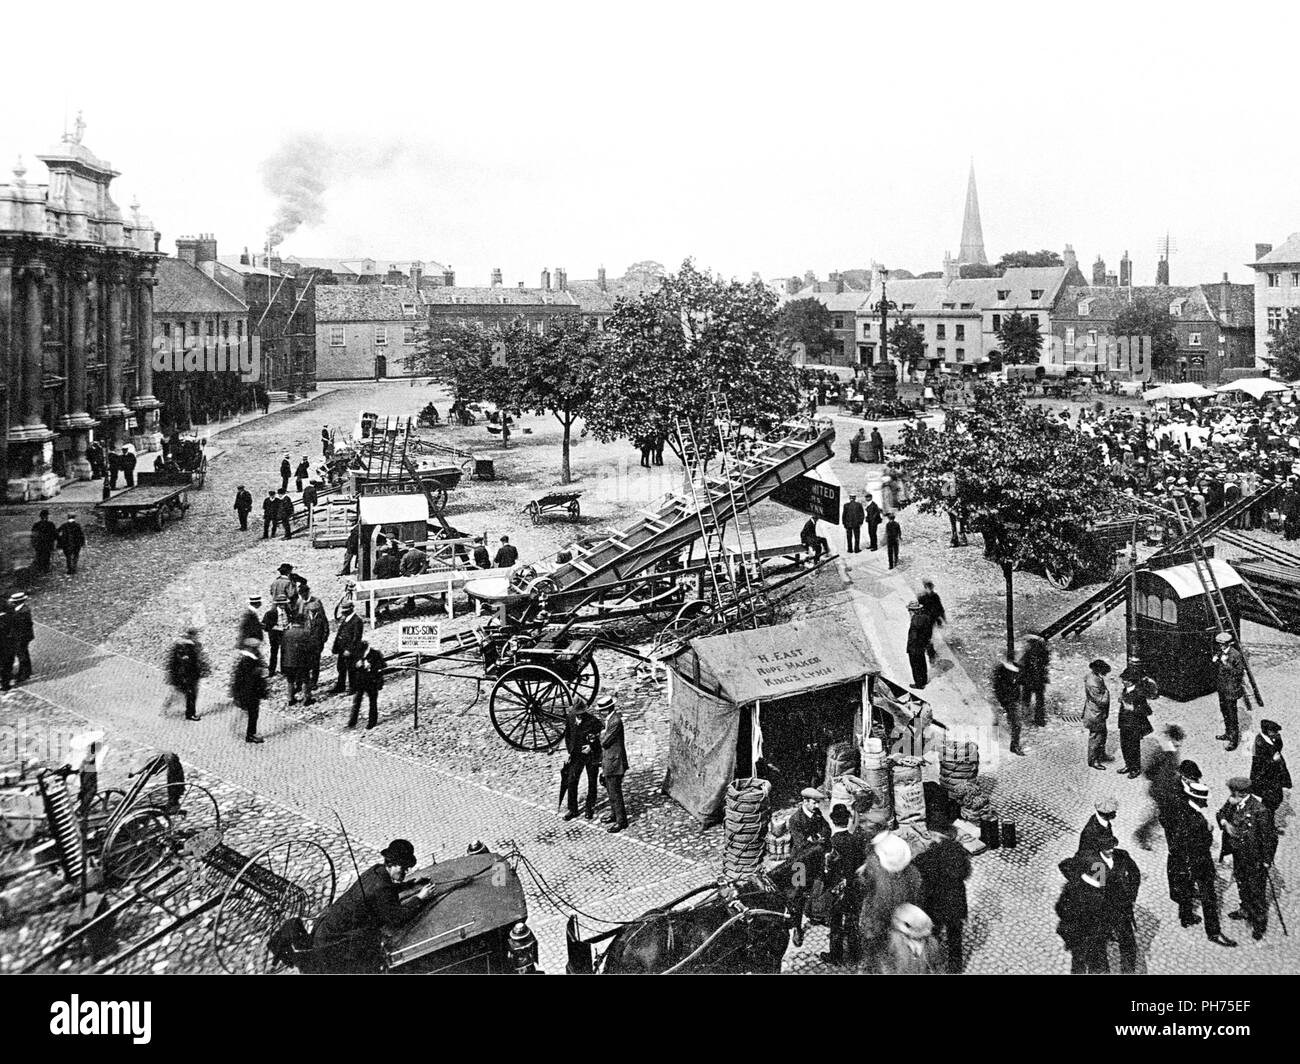 Kings Lynn Market Place, early 1900s - Stock Image